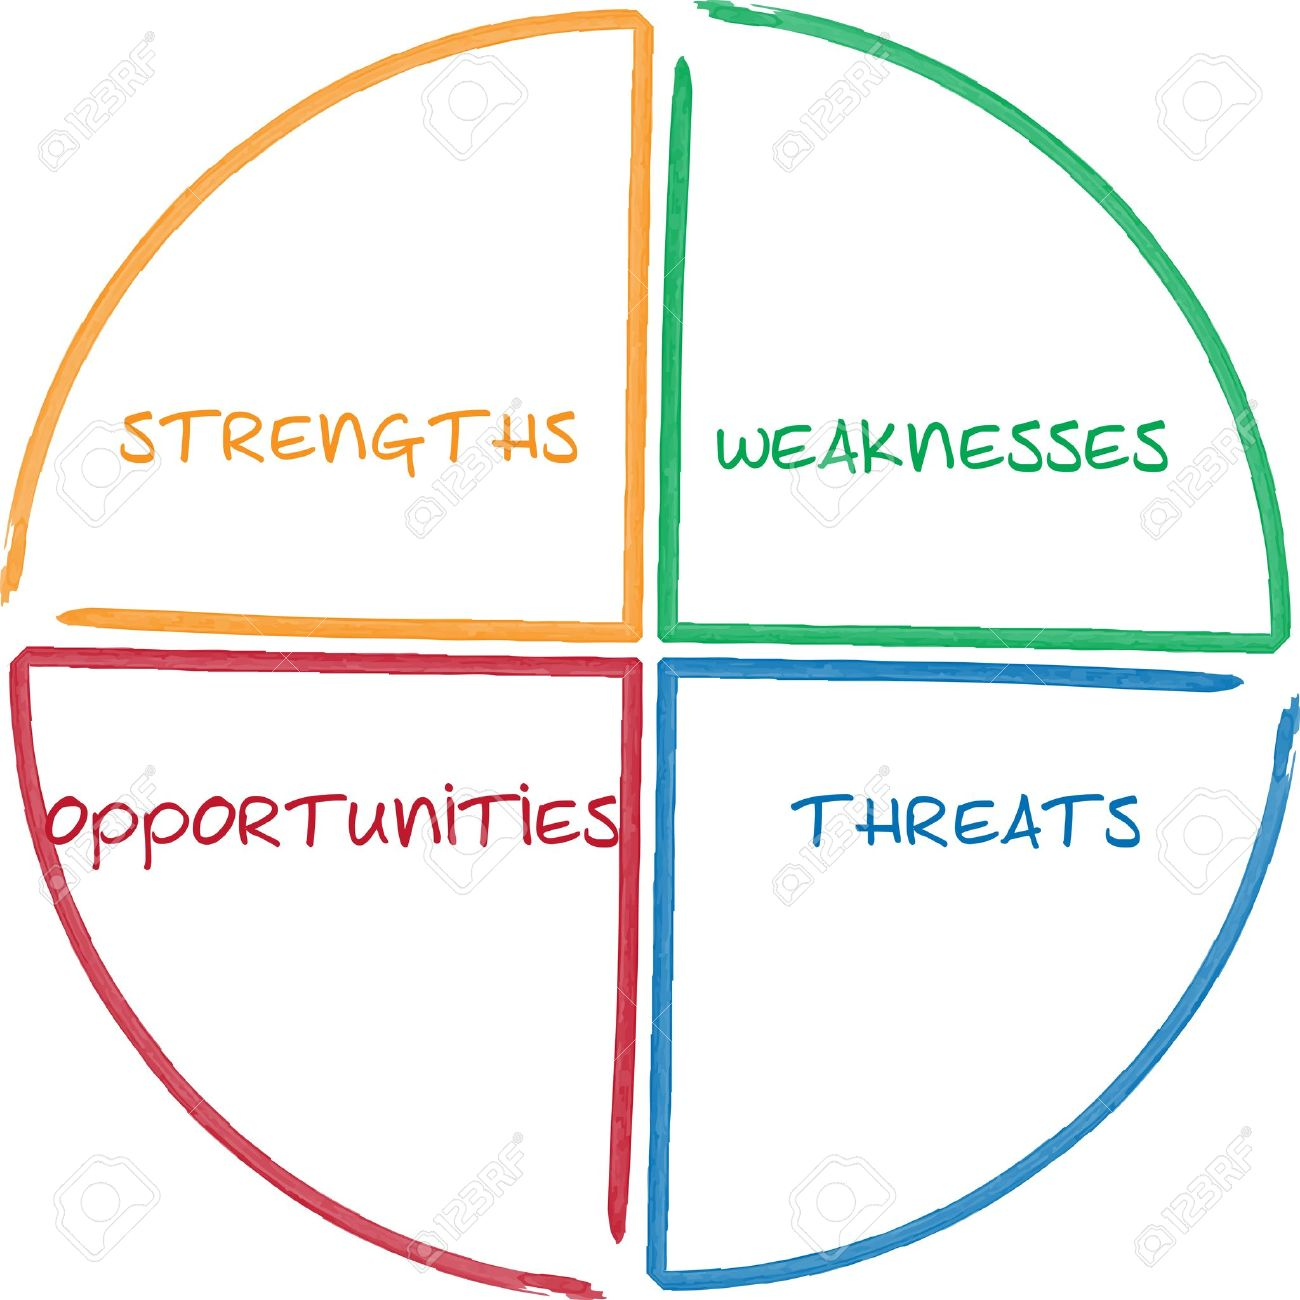 Swot analysis business strategy management process whiteboard imagens swot analysis business strategy management process whiteboard diagram illustration ccuart Image collections